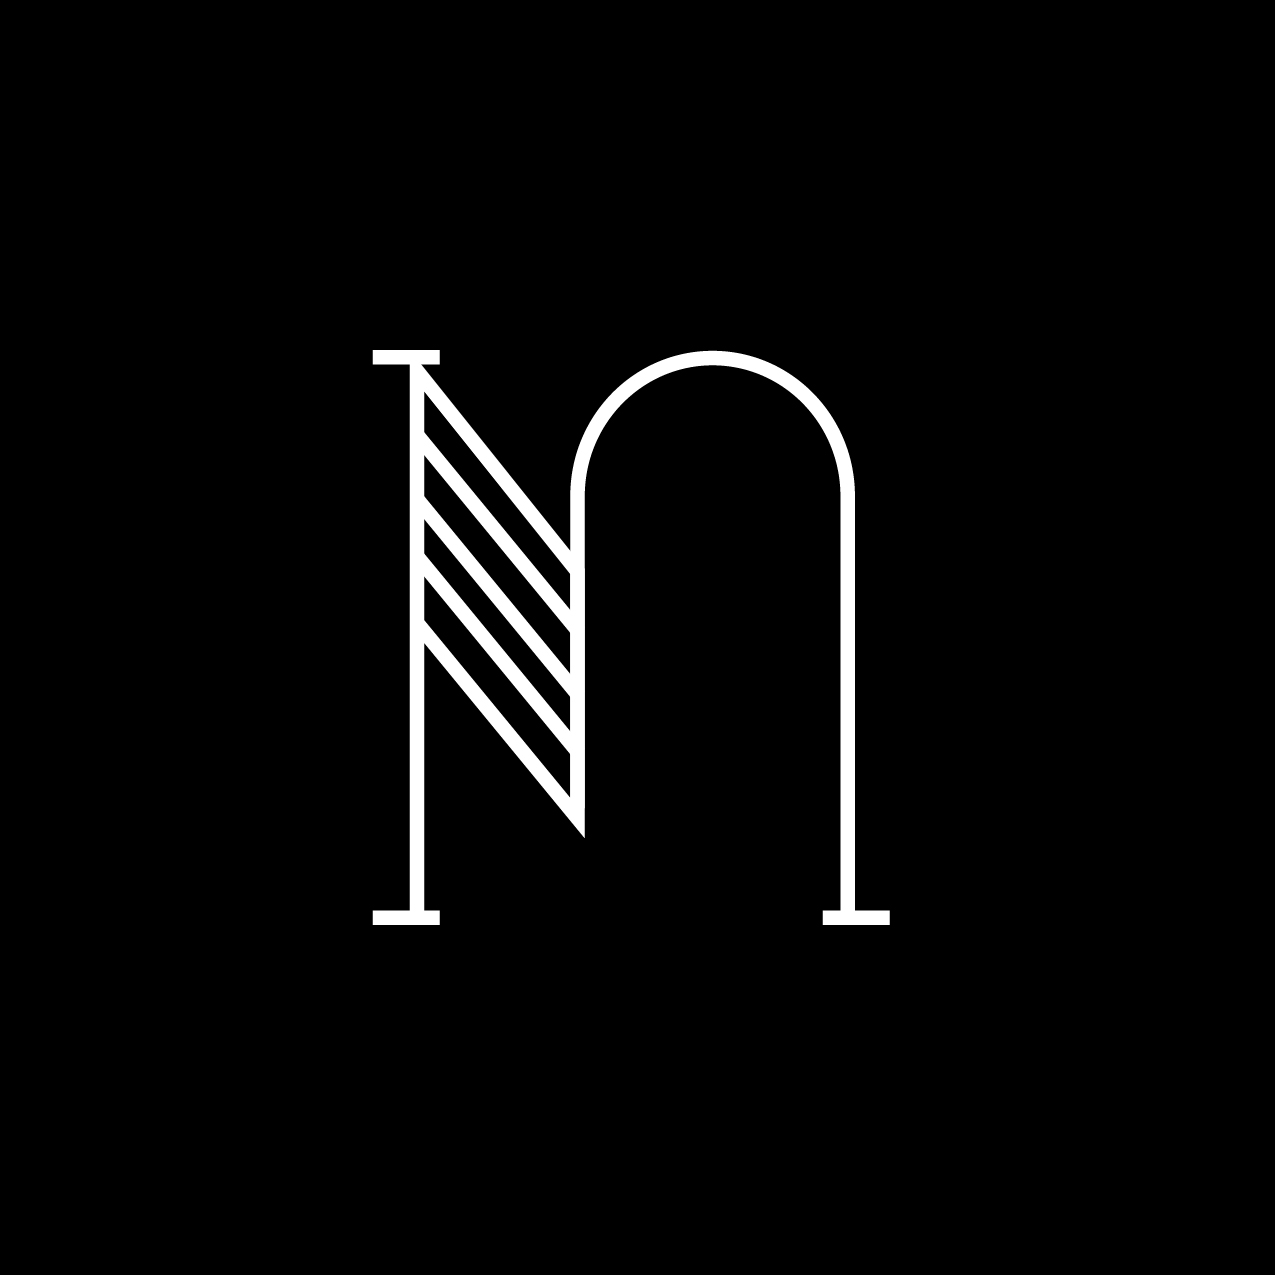 Letter N1 Design by Furia